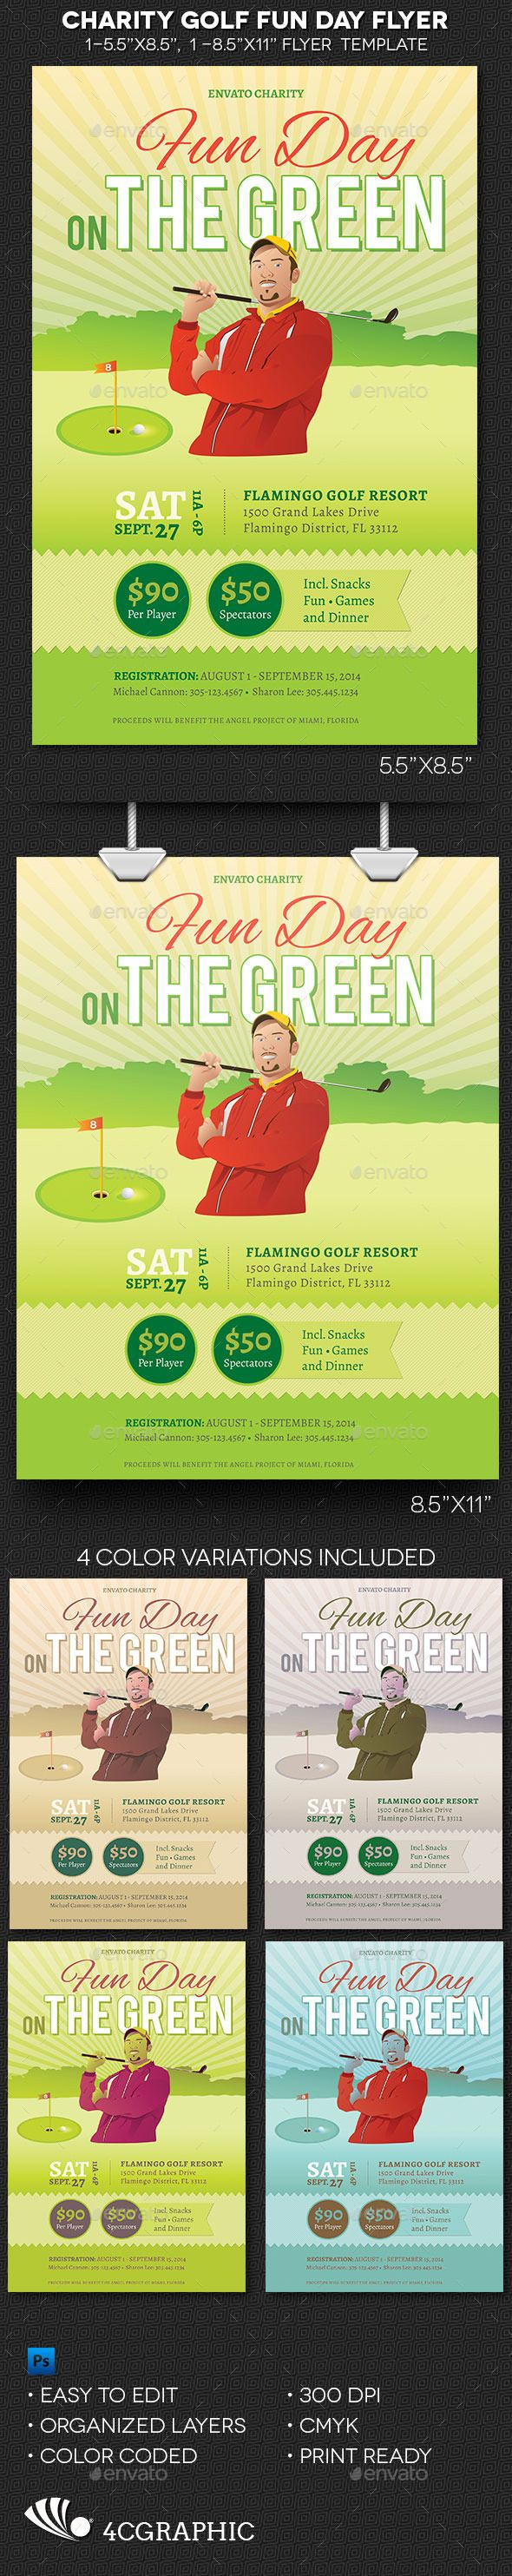 fun brochure templates - 66 best images about charity golf event on pinterest